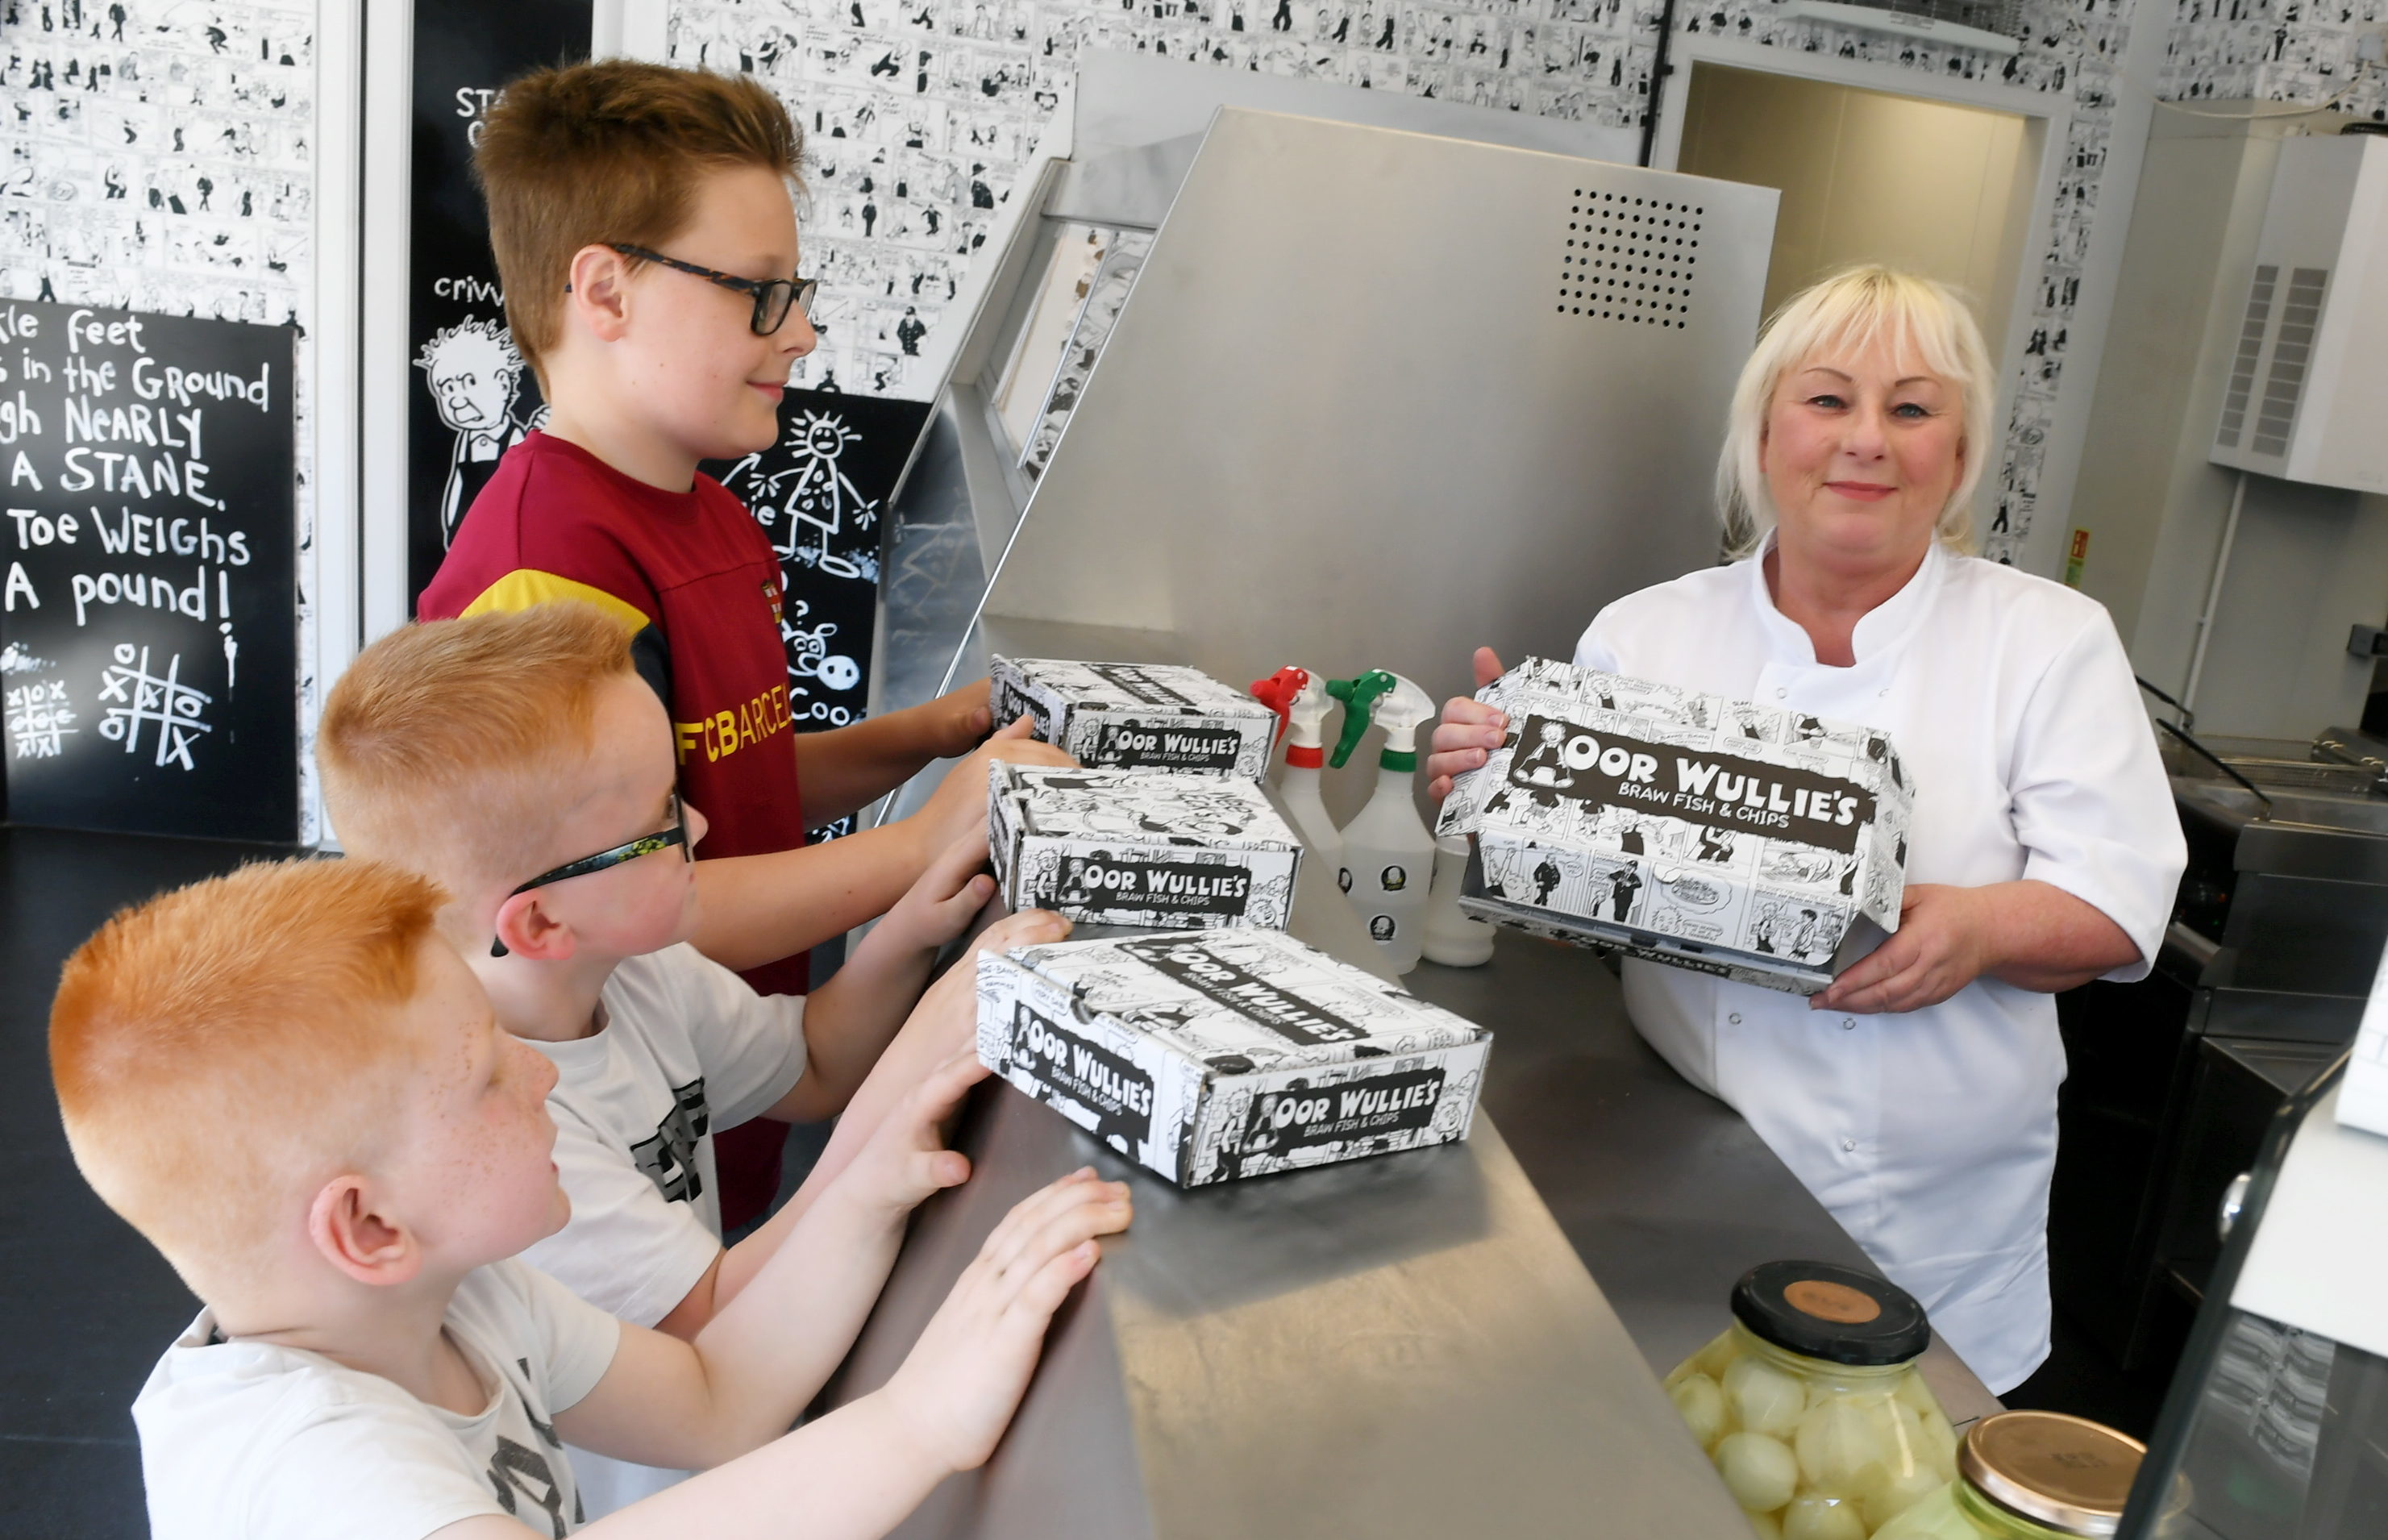 Sylvia Milne serving the first customers, from left, brothers, Lawrence, 11, Zak, 6 and Levi Jaffrey, 6 (Chris Sumner / DC Thomson)